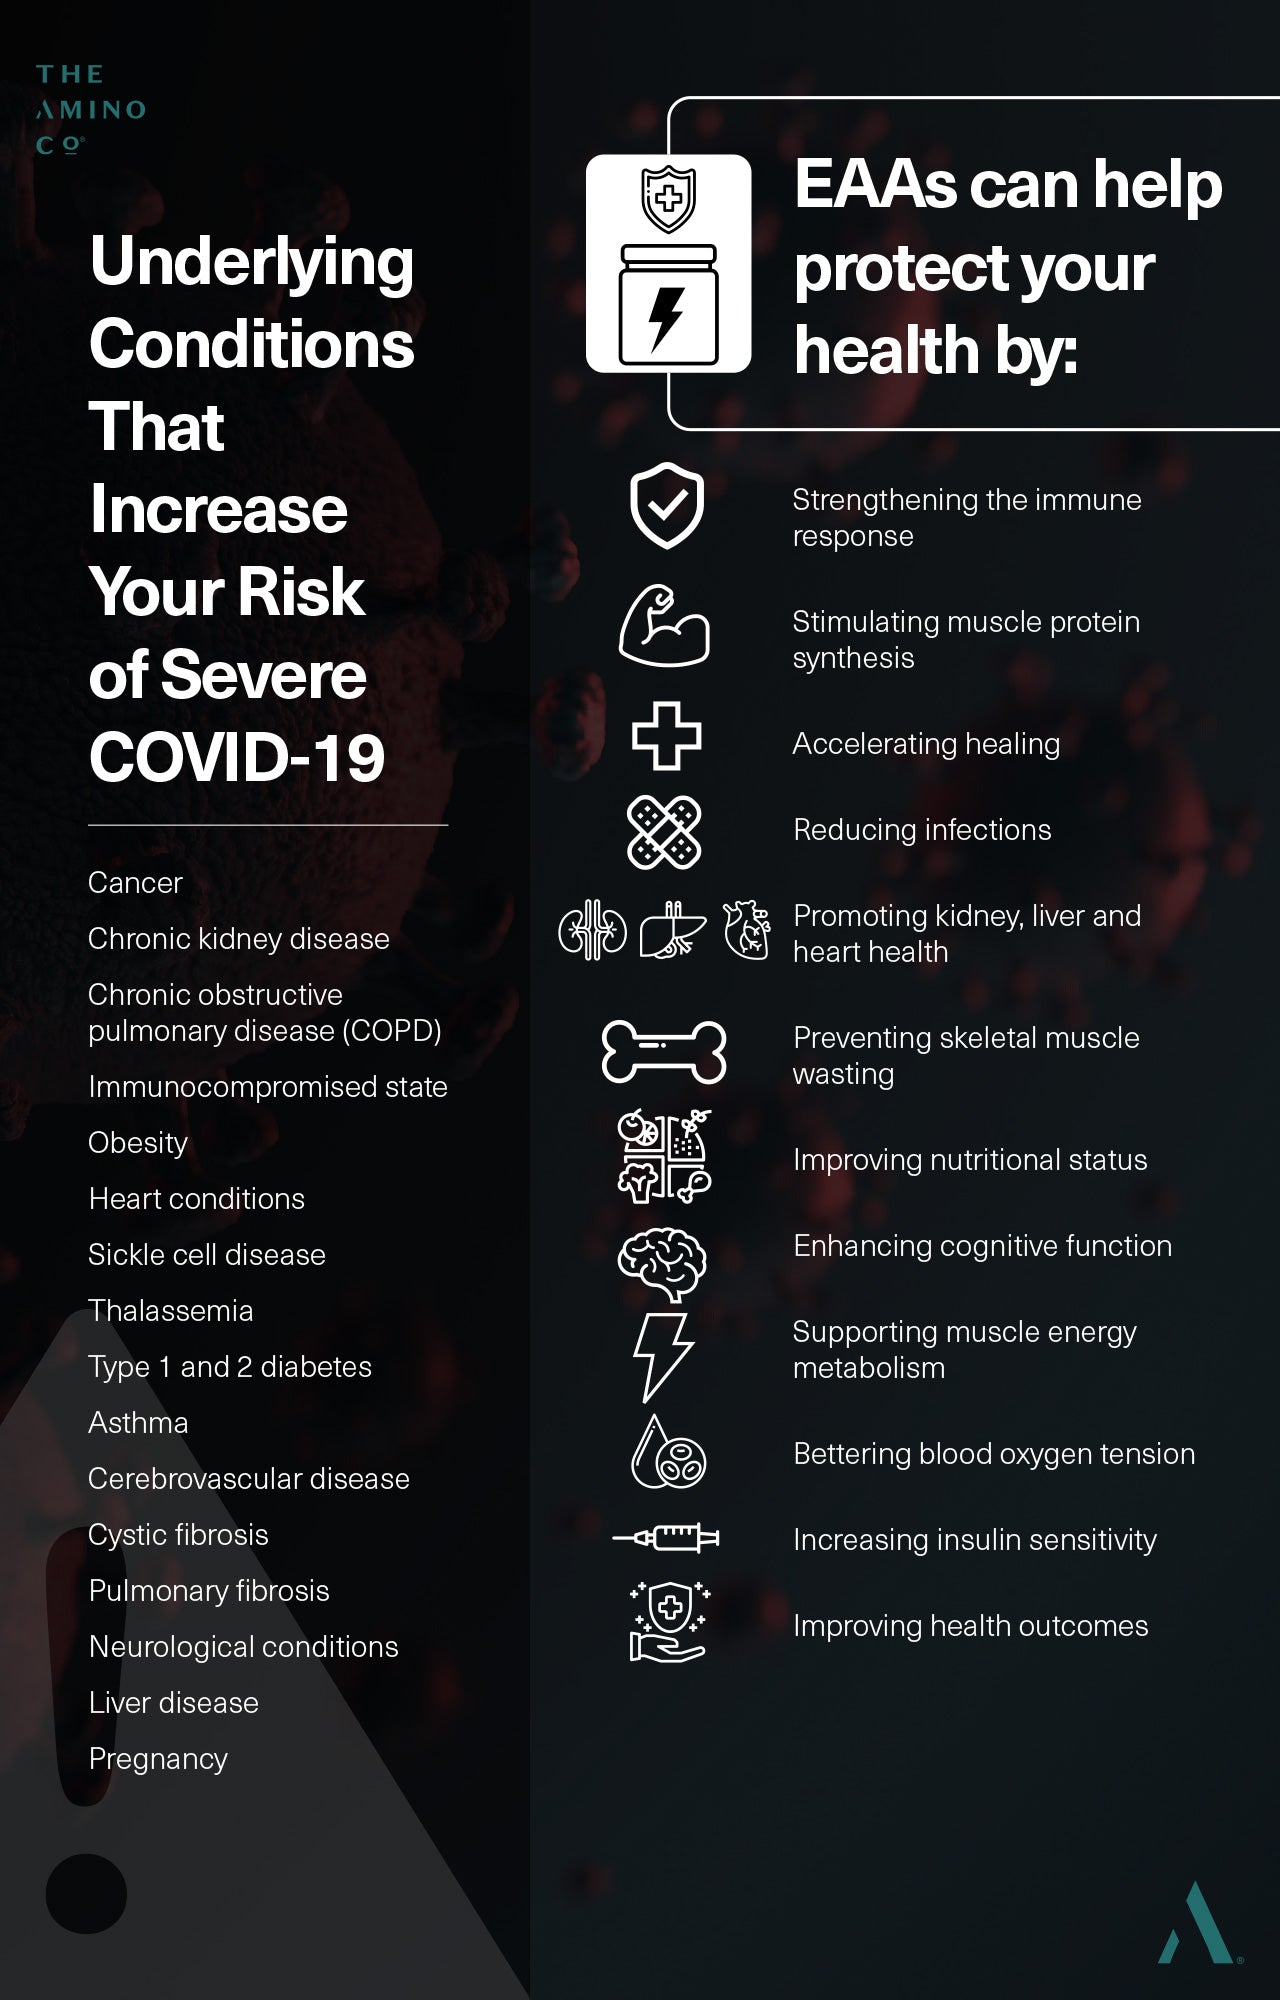 Underlying Conditions That Increase Your Risk of Severe COVID-19